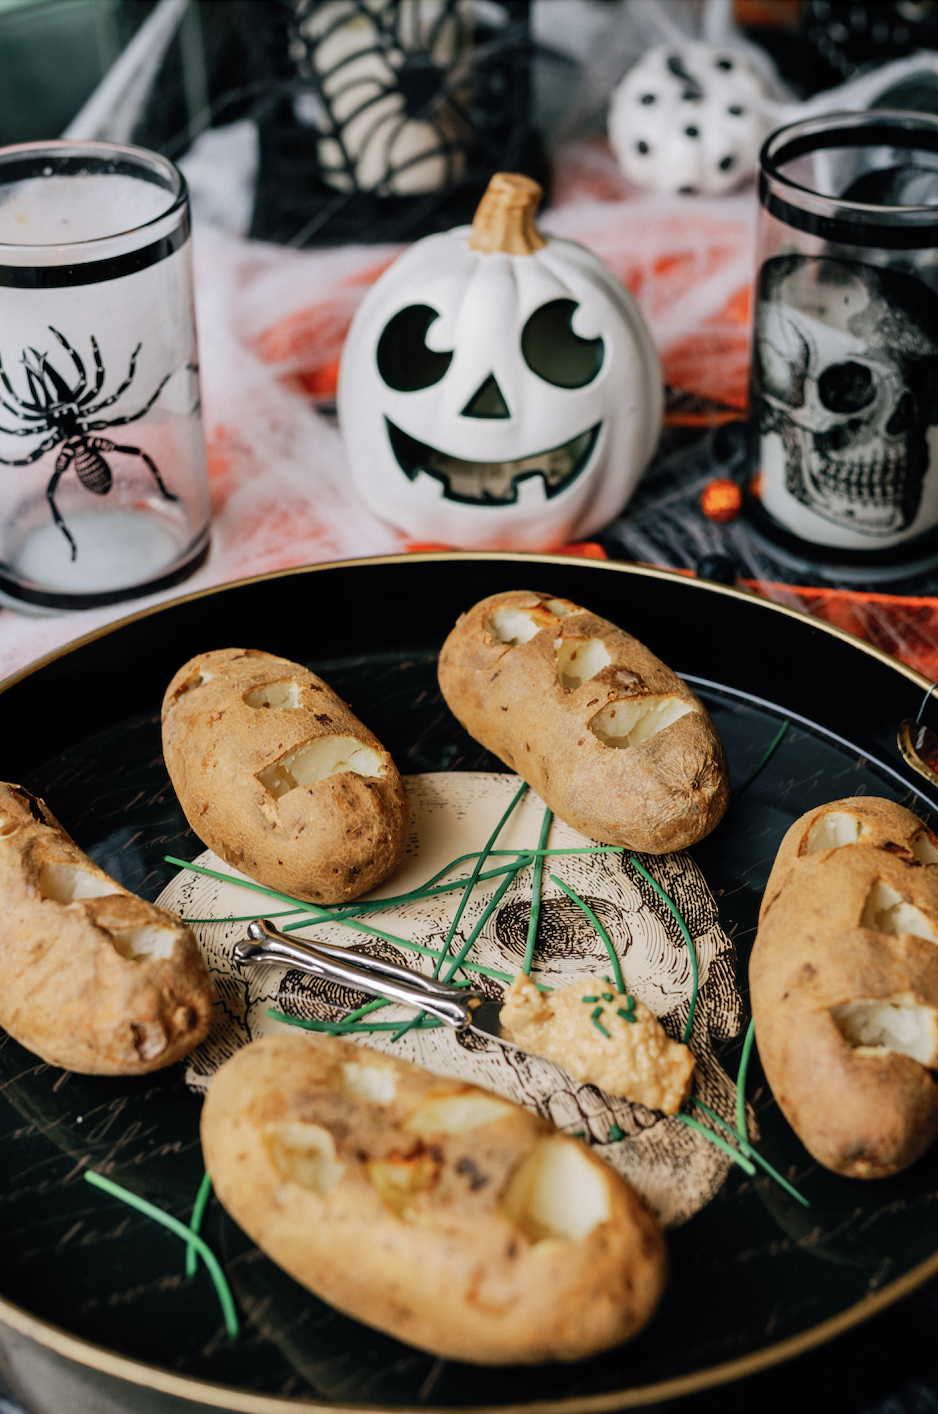 Baked potatoes on a plate have been cut to resemble shrunken potato heads. Halloween decorations surround them